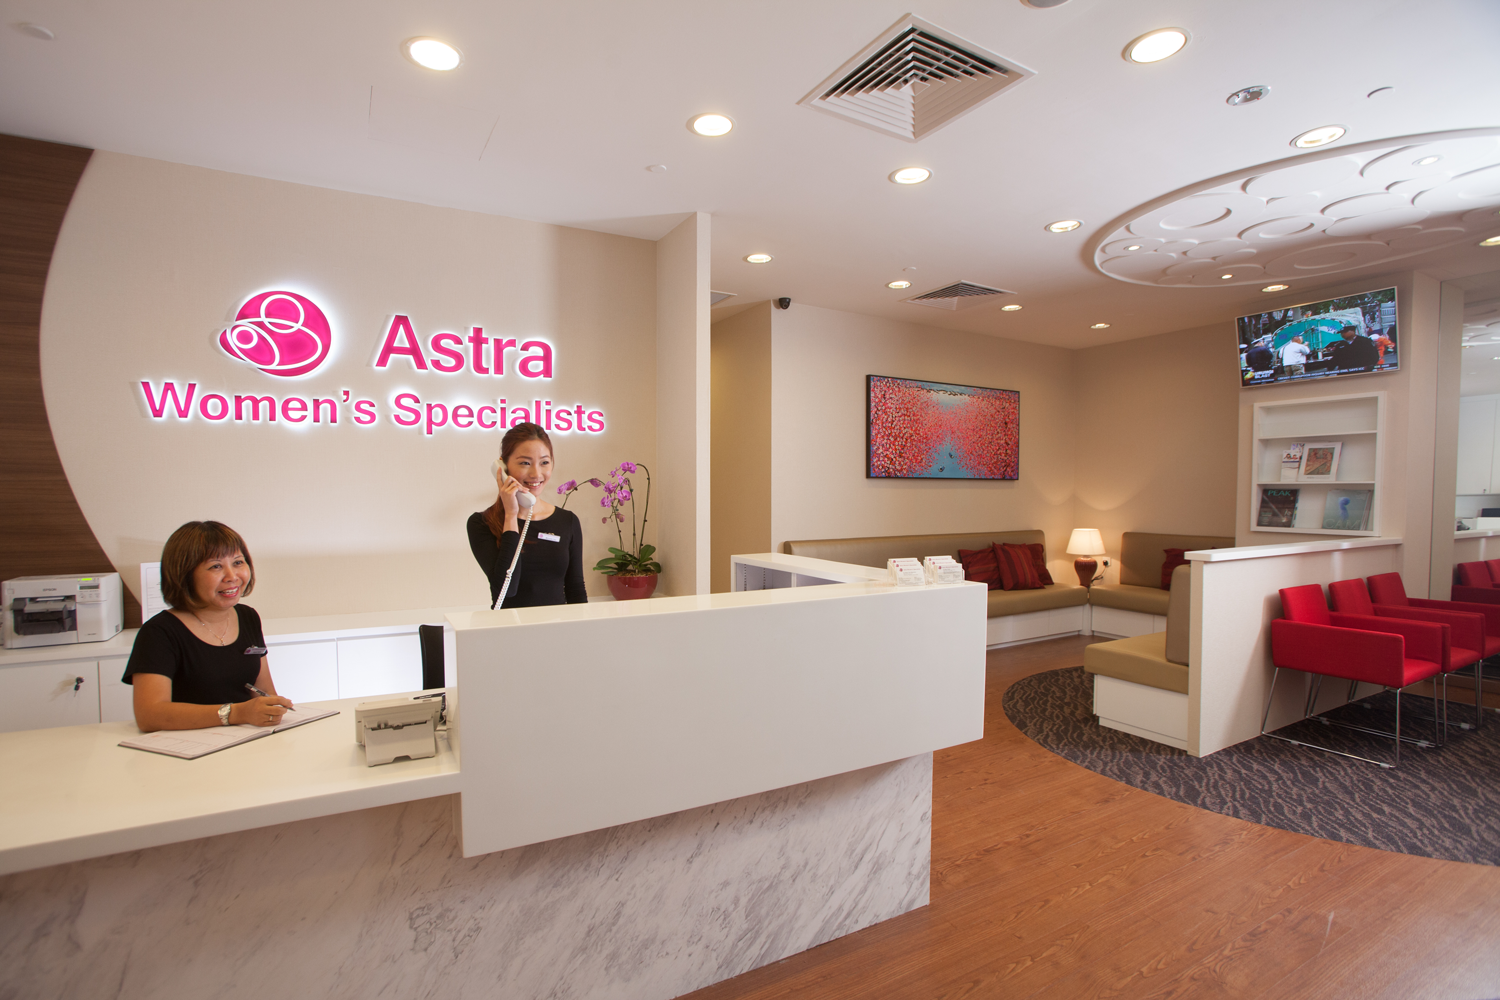 Astra-Women's-Specialists